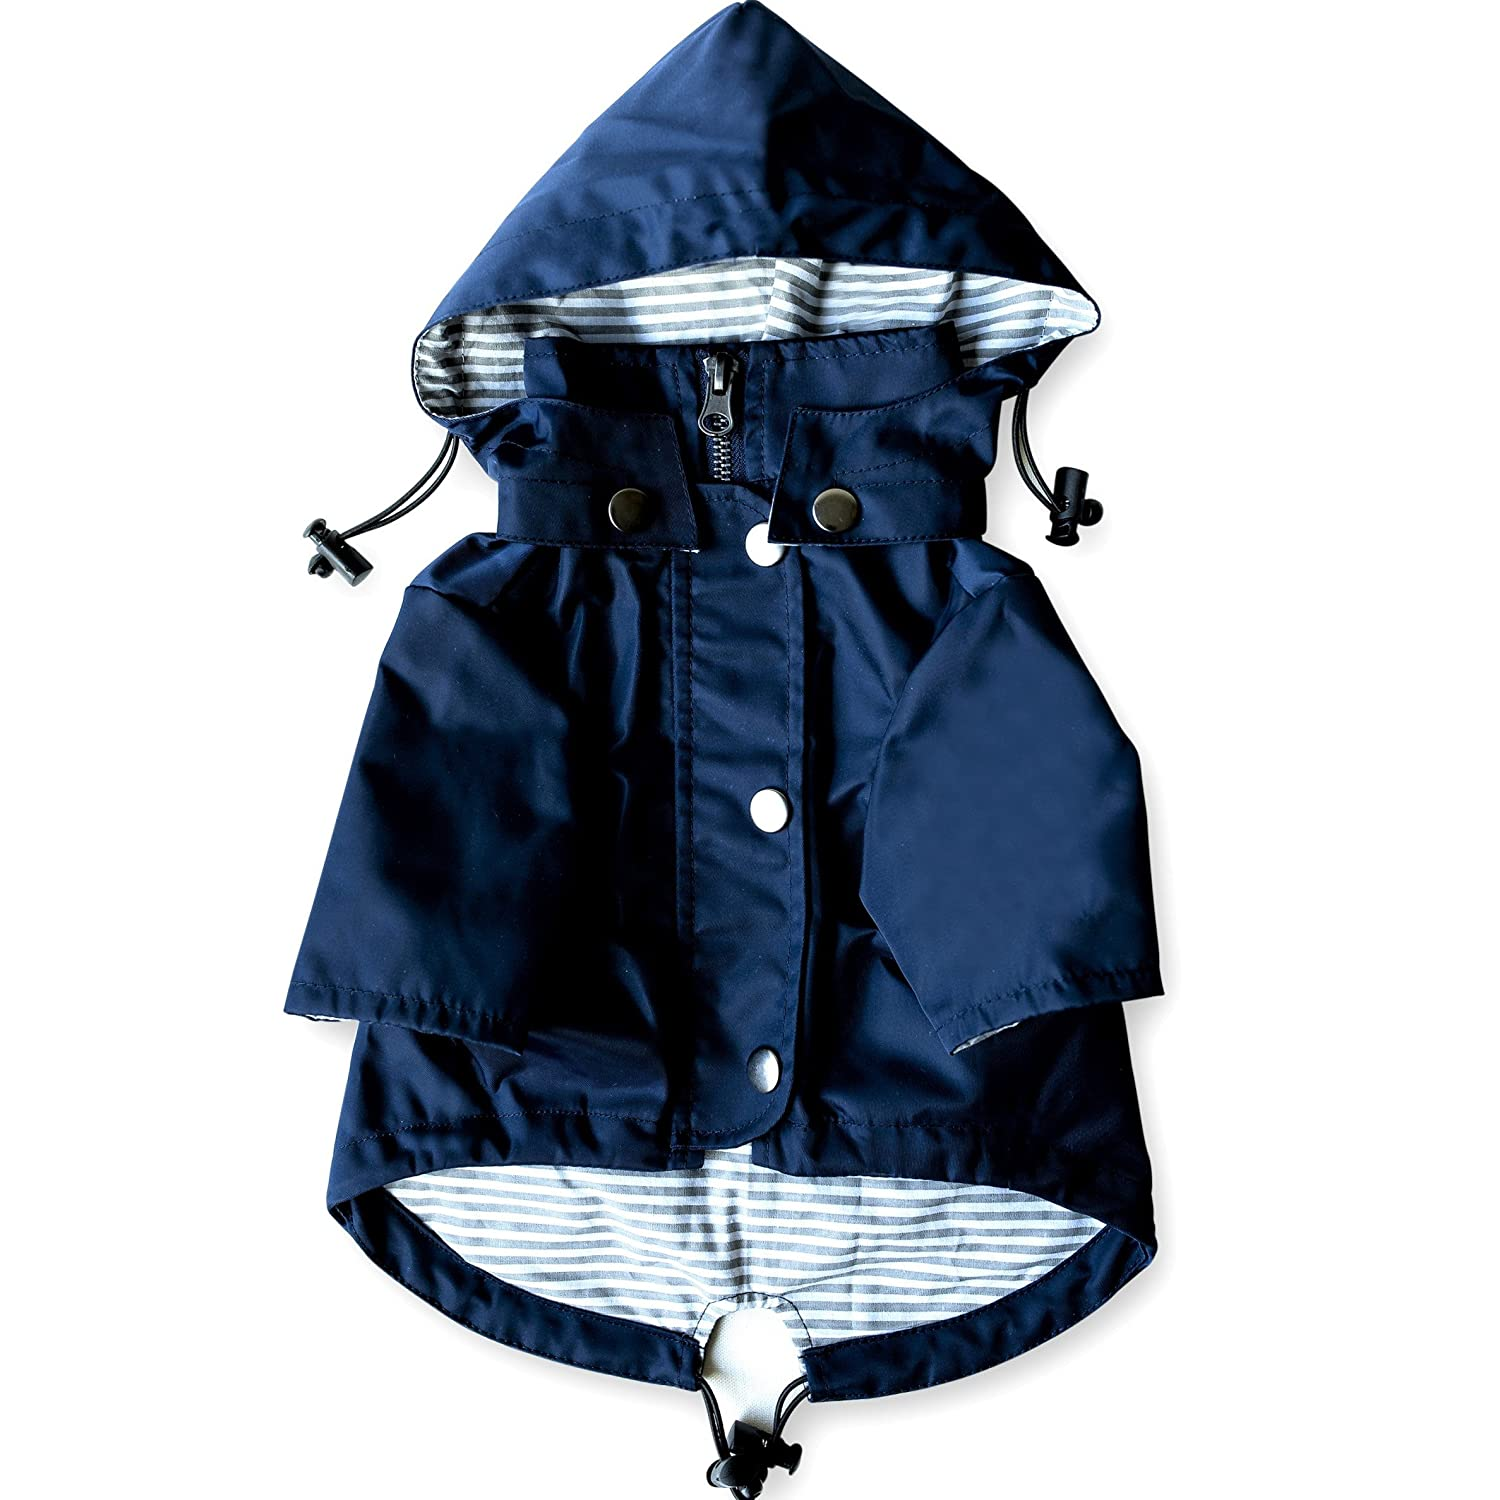 Navy Blue Zip Up Dog Raincoat with Reflective Buttons, Pockets, Rain/Water Resistant, Adjustable Drawstring, Removable Hood - Size XS to XXL Available best dog raincoat